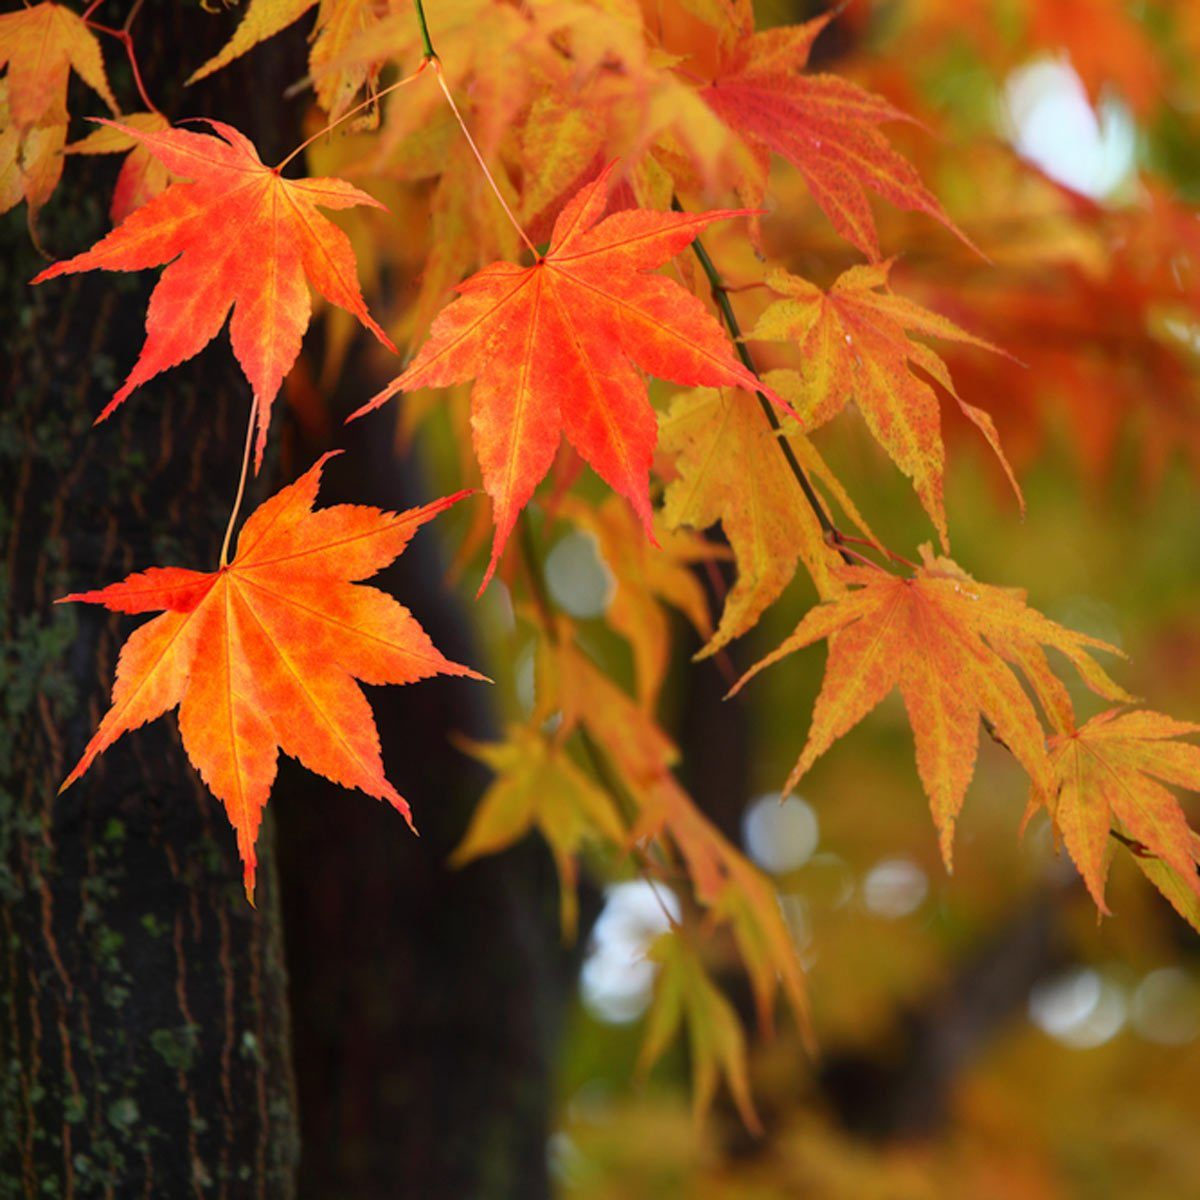 shutterstock_50008510 Japanese maple tree fall foliage leaves